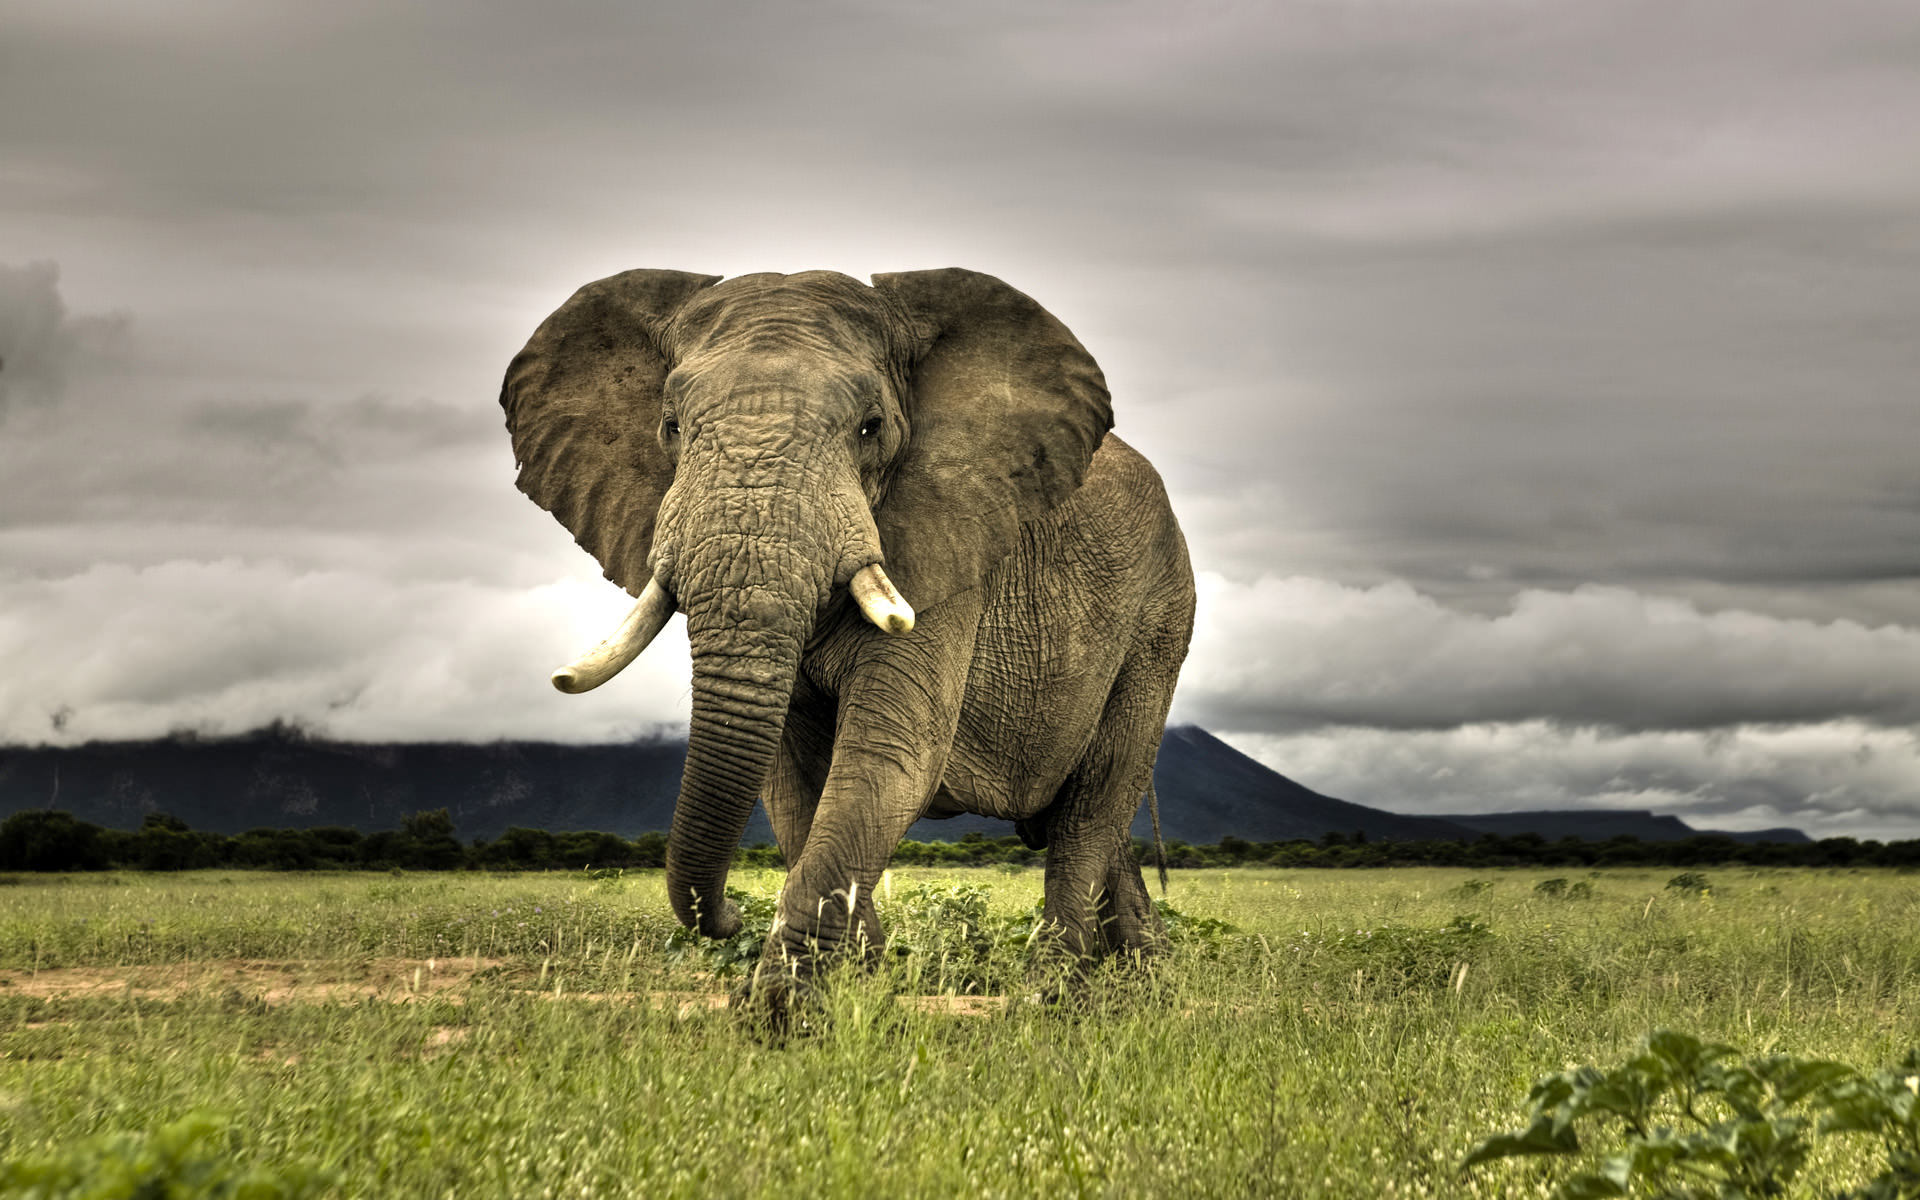 Amazing Elephant Wallpaper 1920x1200.